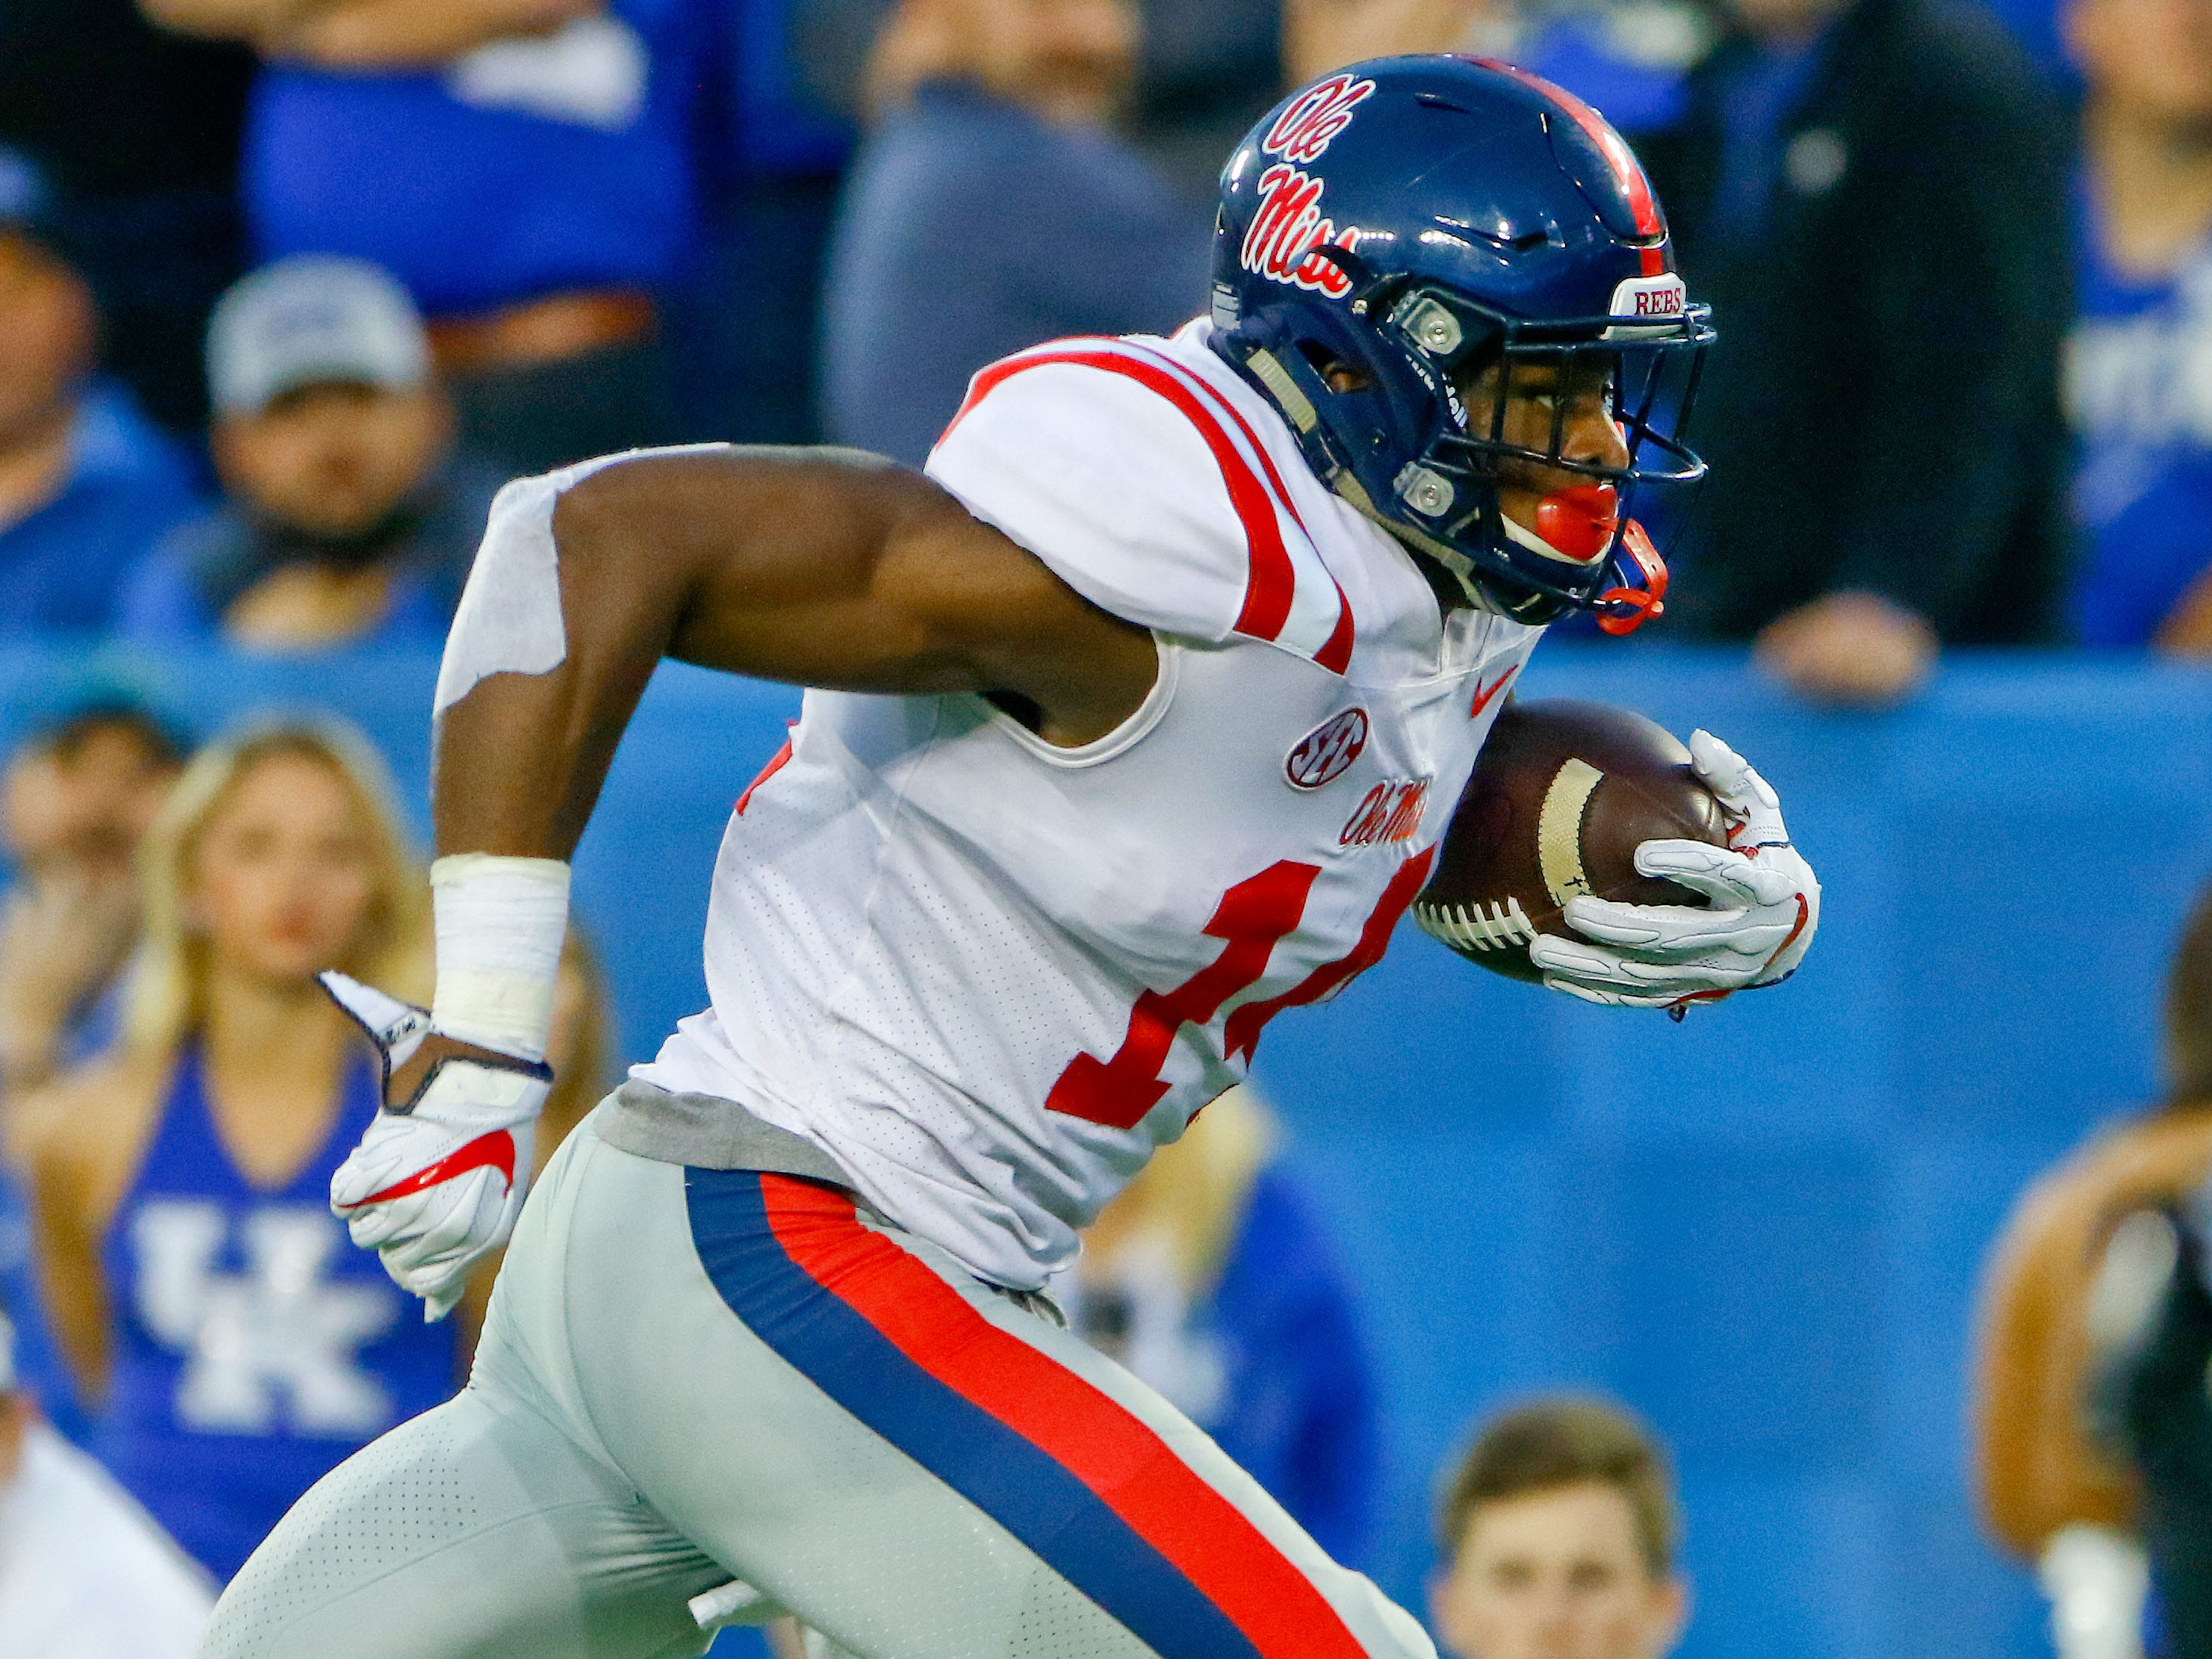 D.K. Metcalf, WR, Ole Miss